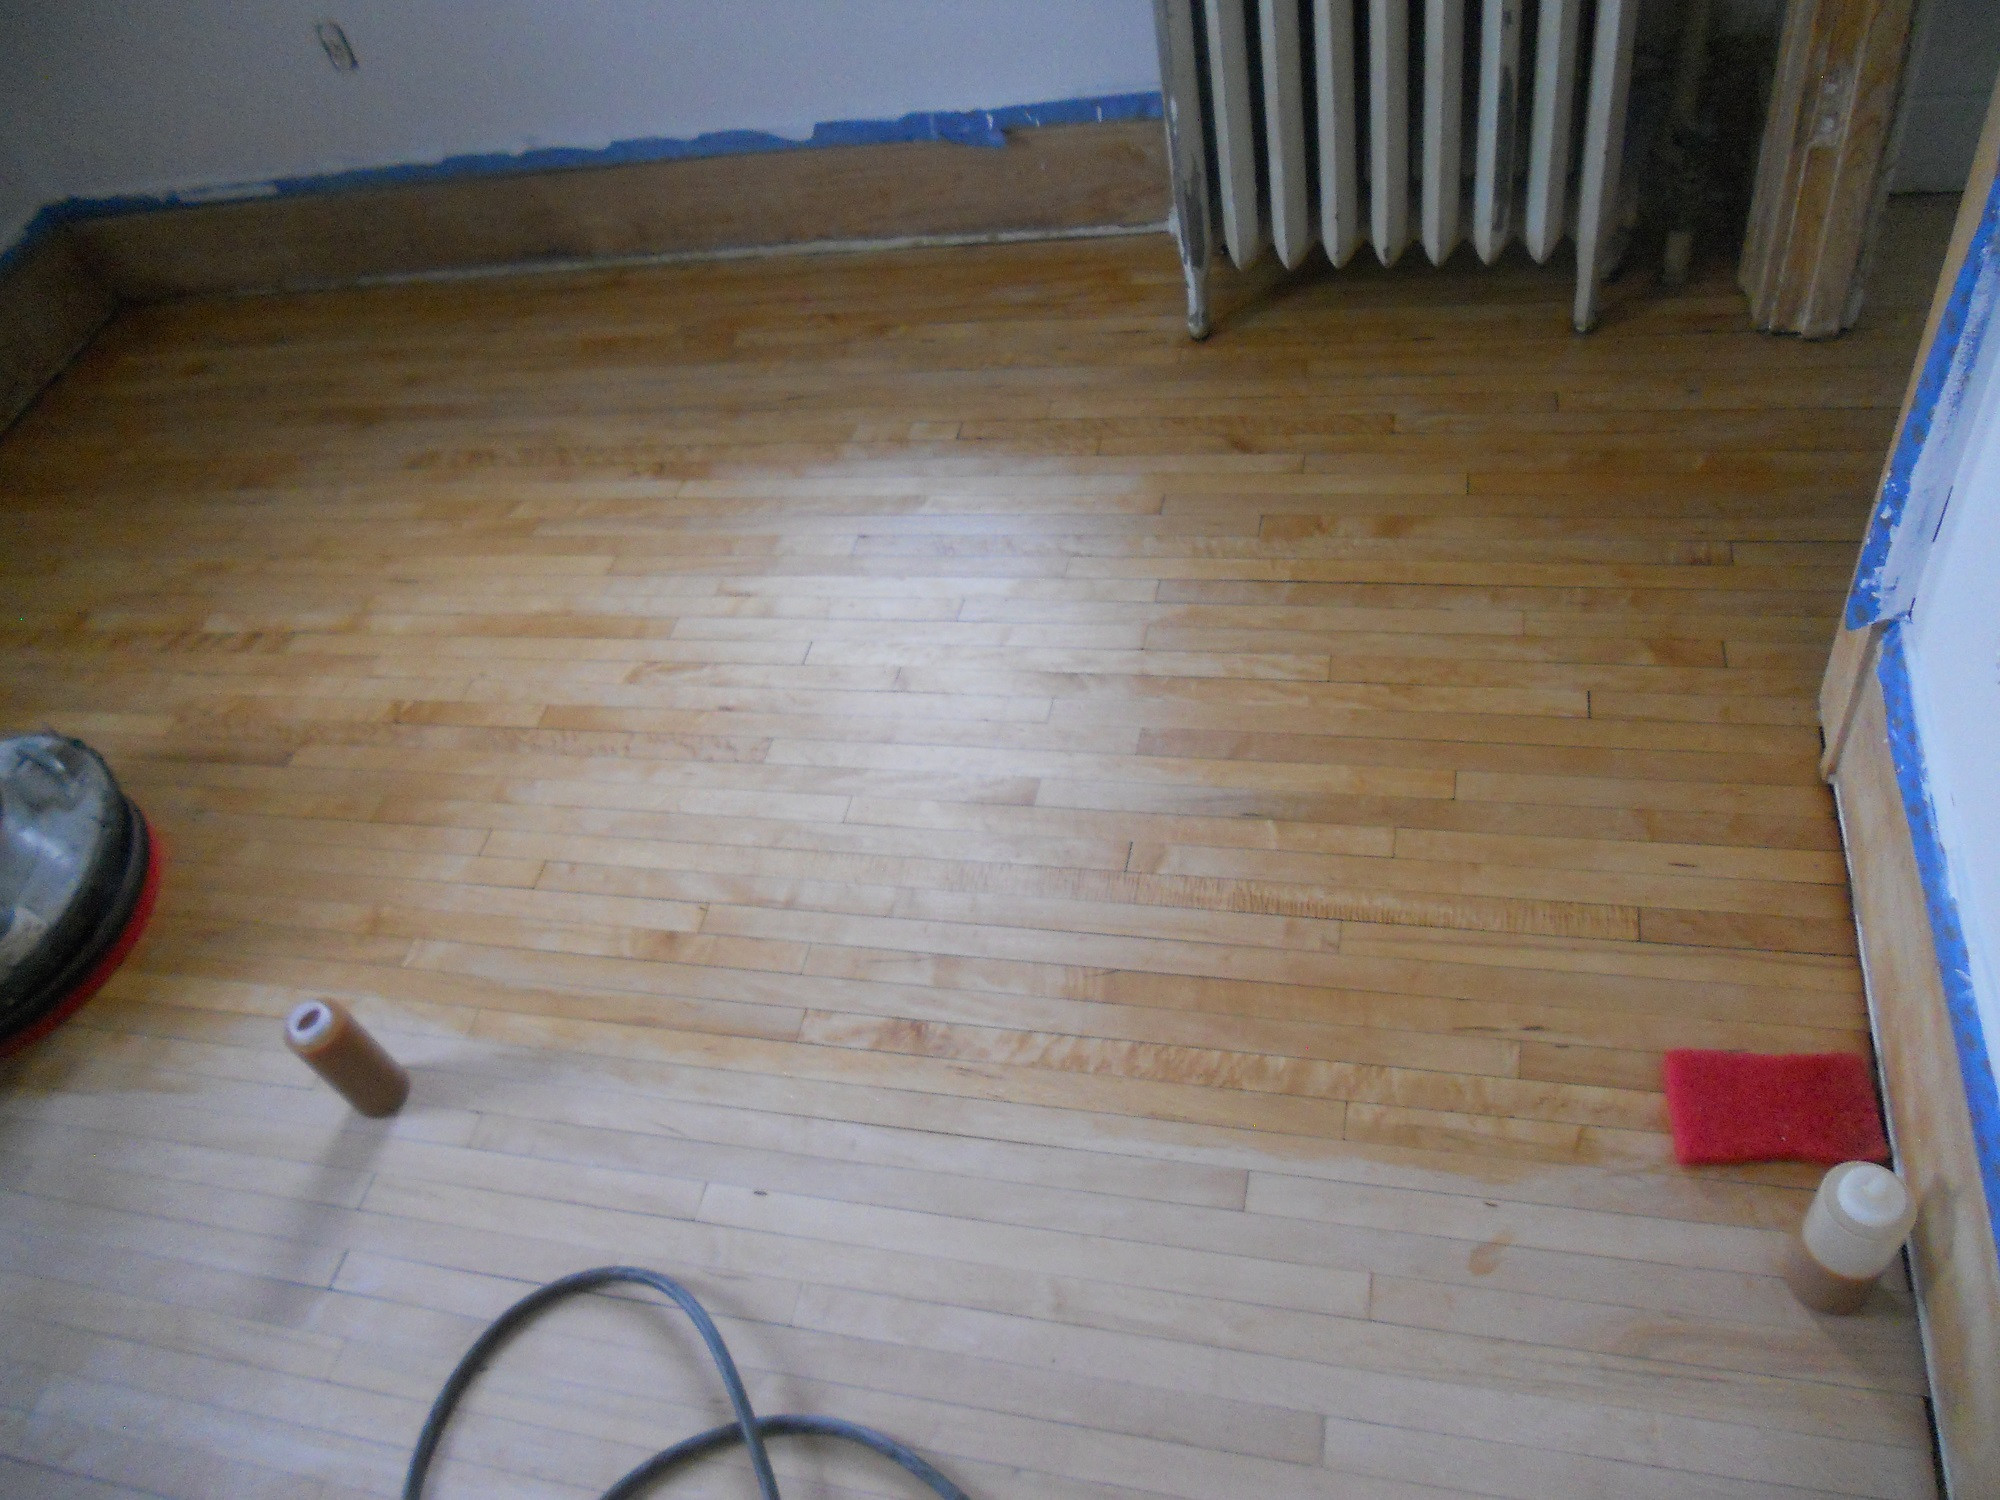 hardwood floor refinishing st petersburg fl of how to apply rubio wood floor techniques 101 with regard to 6 buff on and buff off section by section